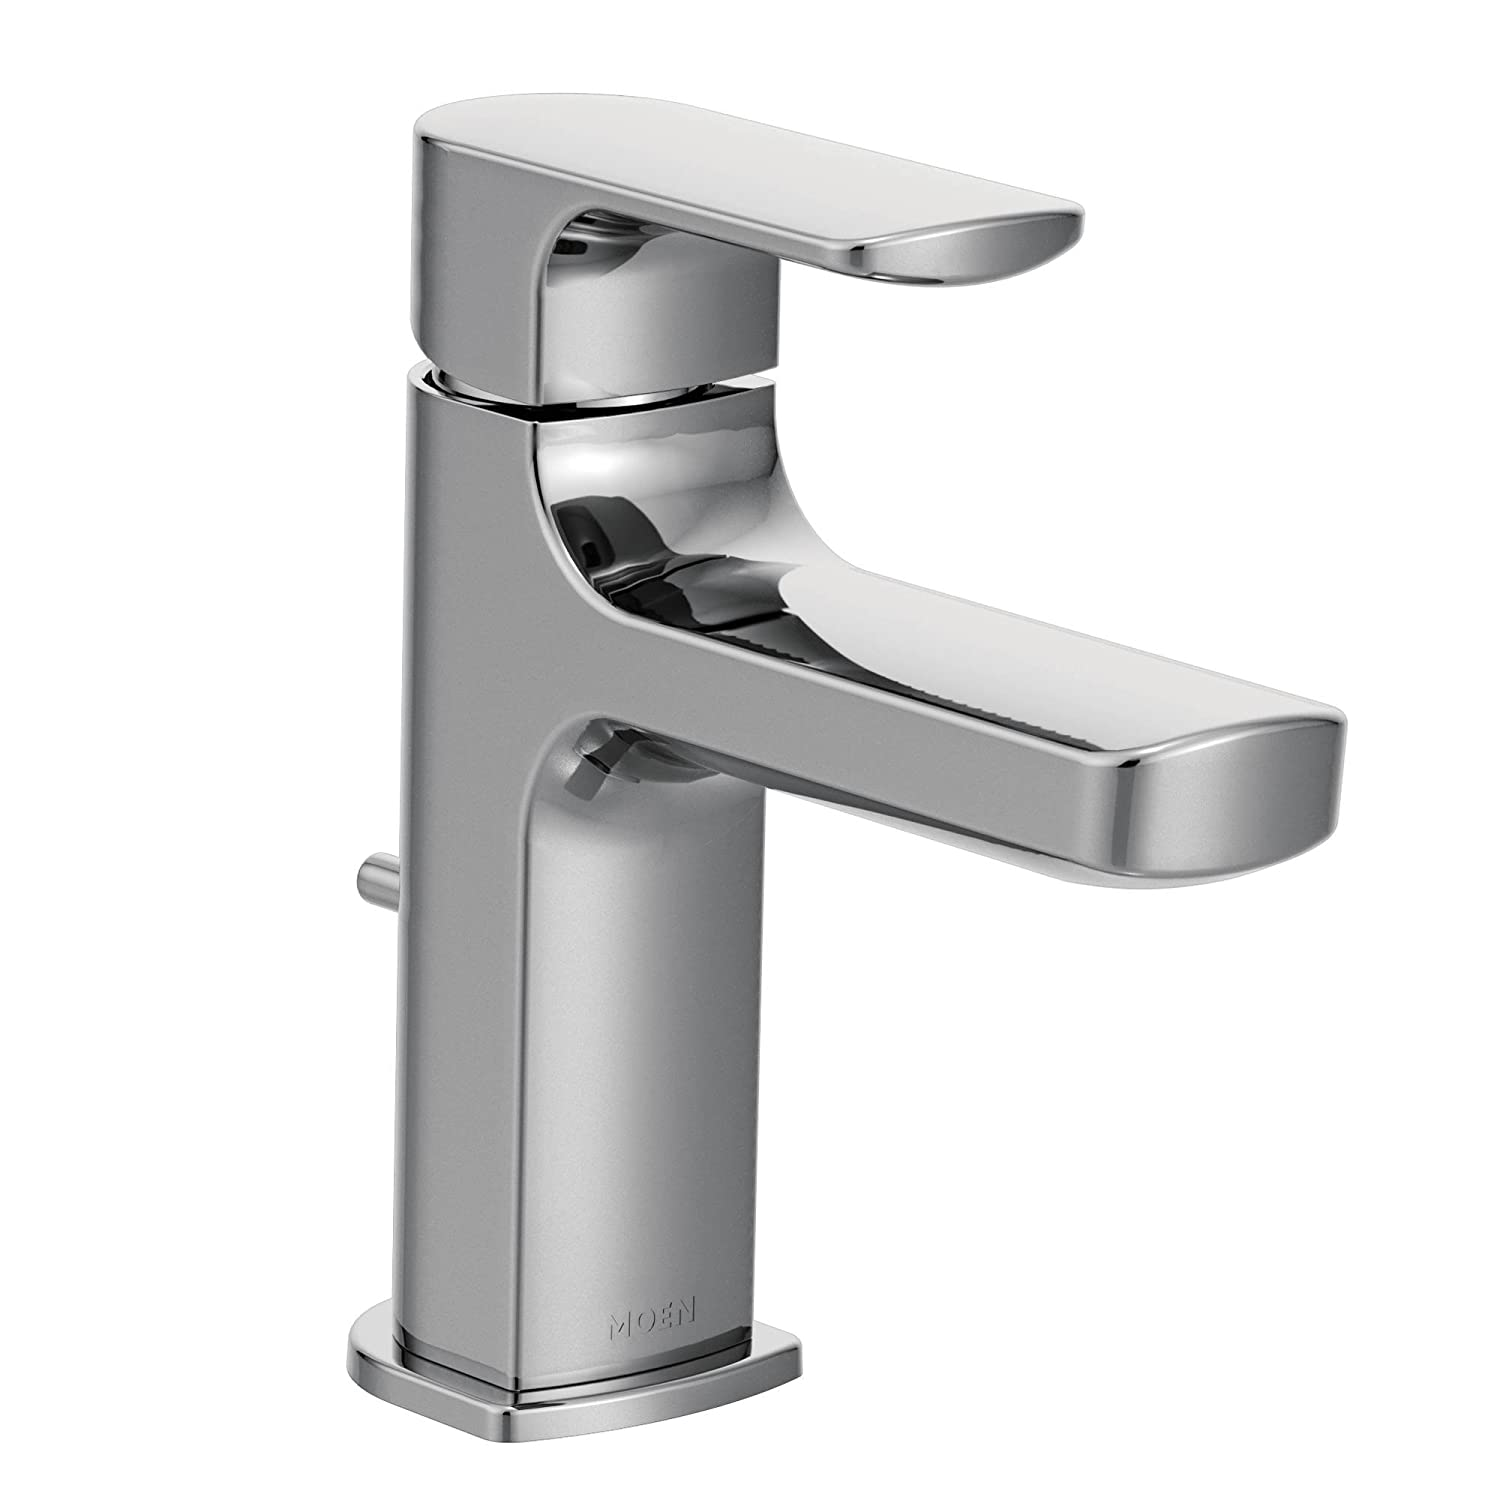 Bon Moen 6900 Rizon One Handle Low Arc Bathroom Faucet With Drain Assembly,  Chrome     Amazon.com